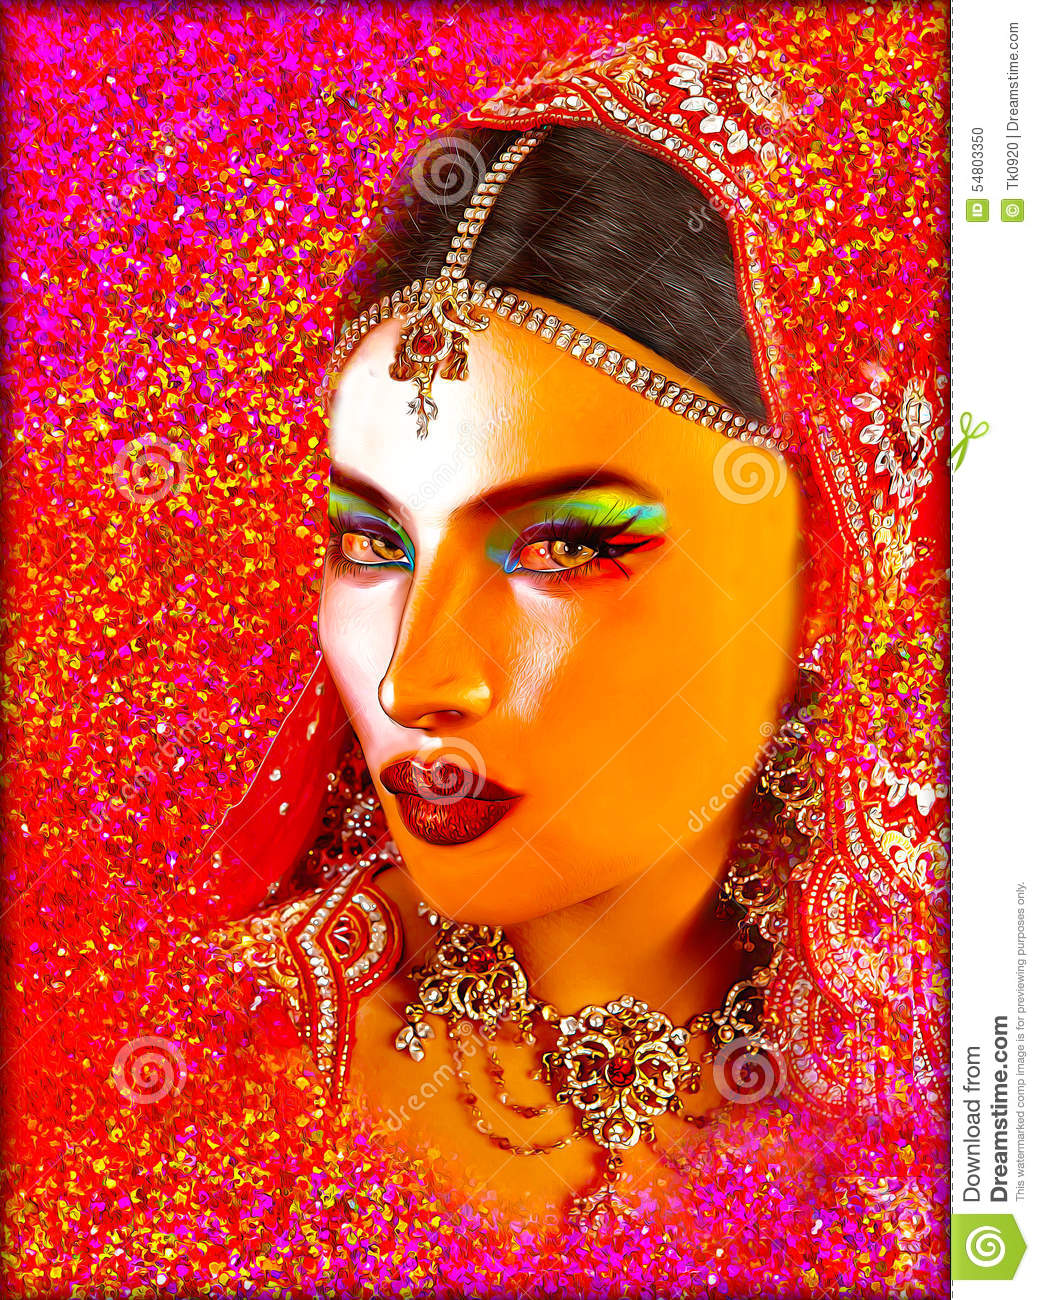 Abstract Digital Art Of Indian Or Asian Woman's Face ...